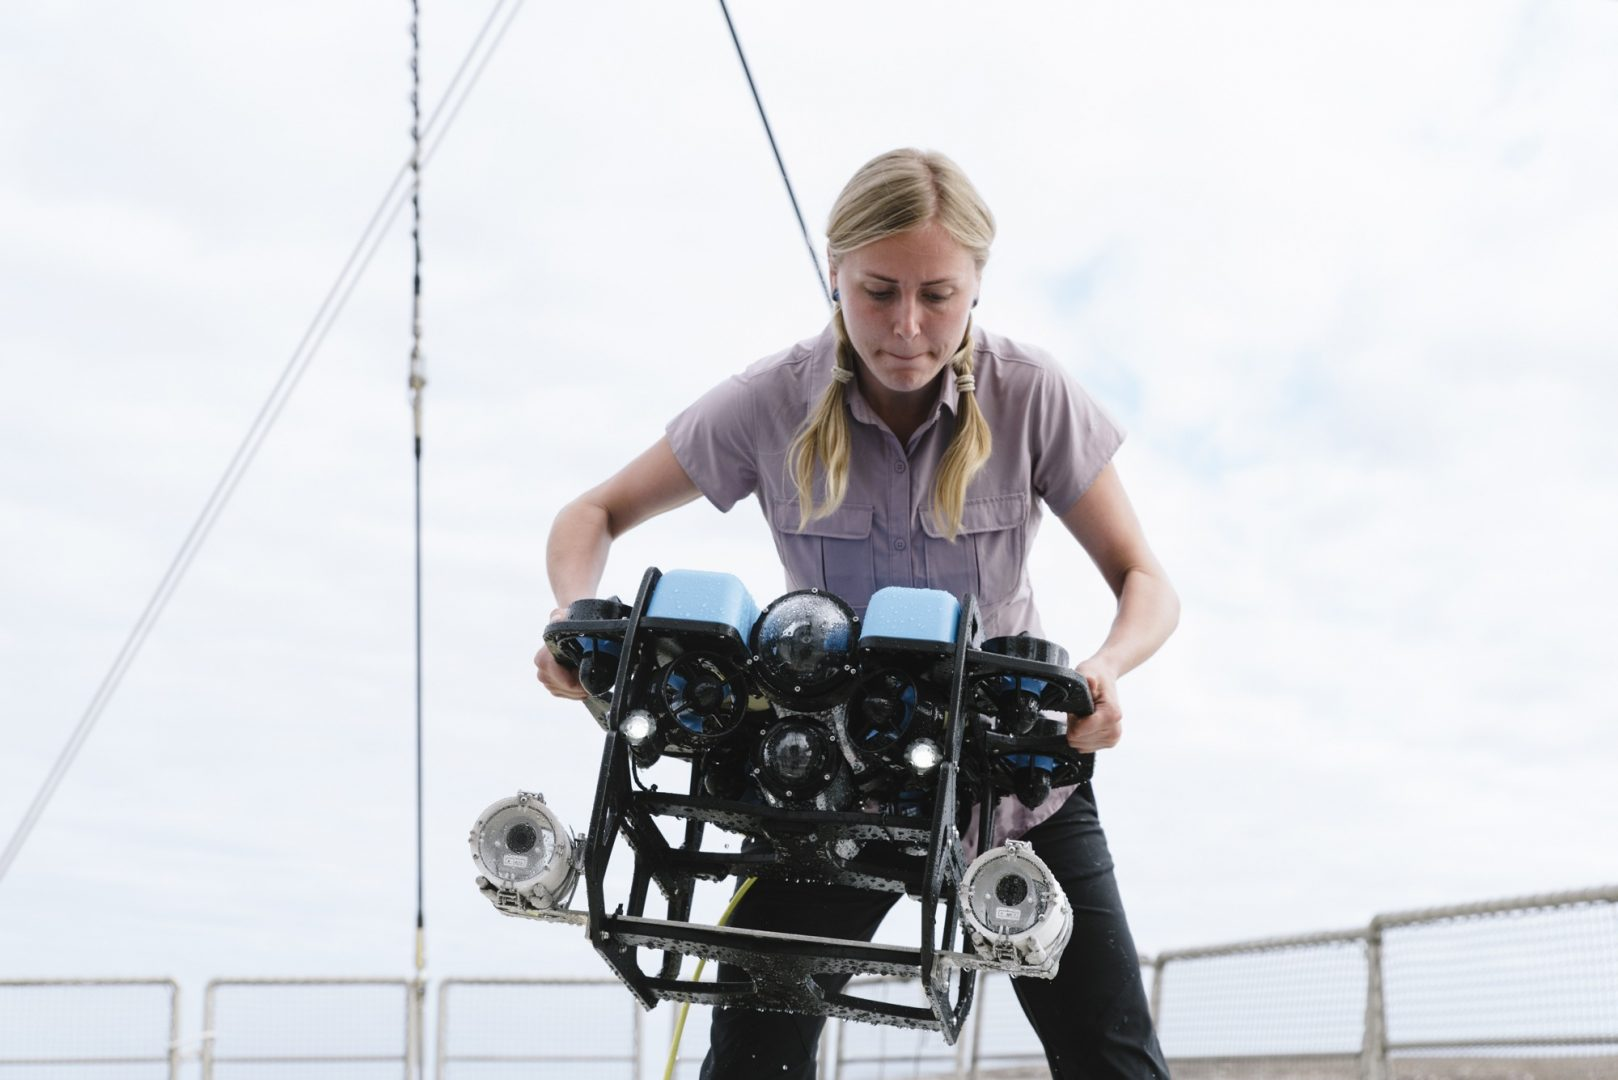 PHD student Darryn Sword prepares to lift the ROV into the water from the Rainbow Warrior III in the waters of The Great Australian Bight.